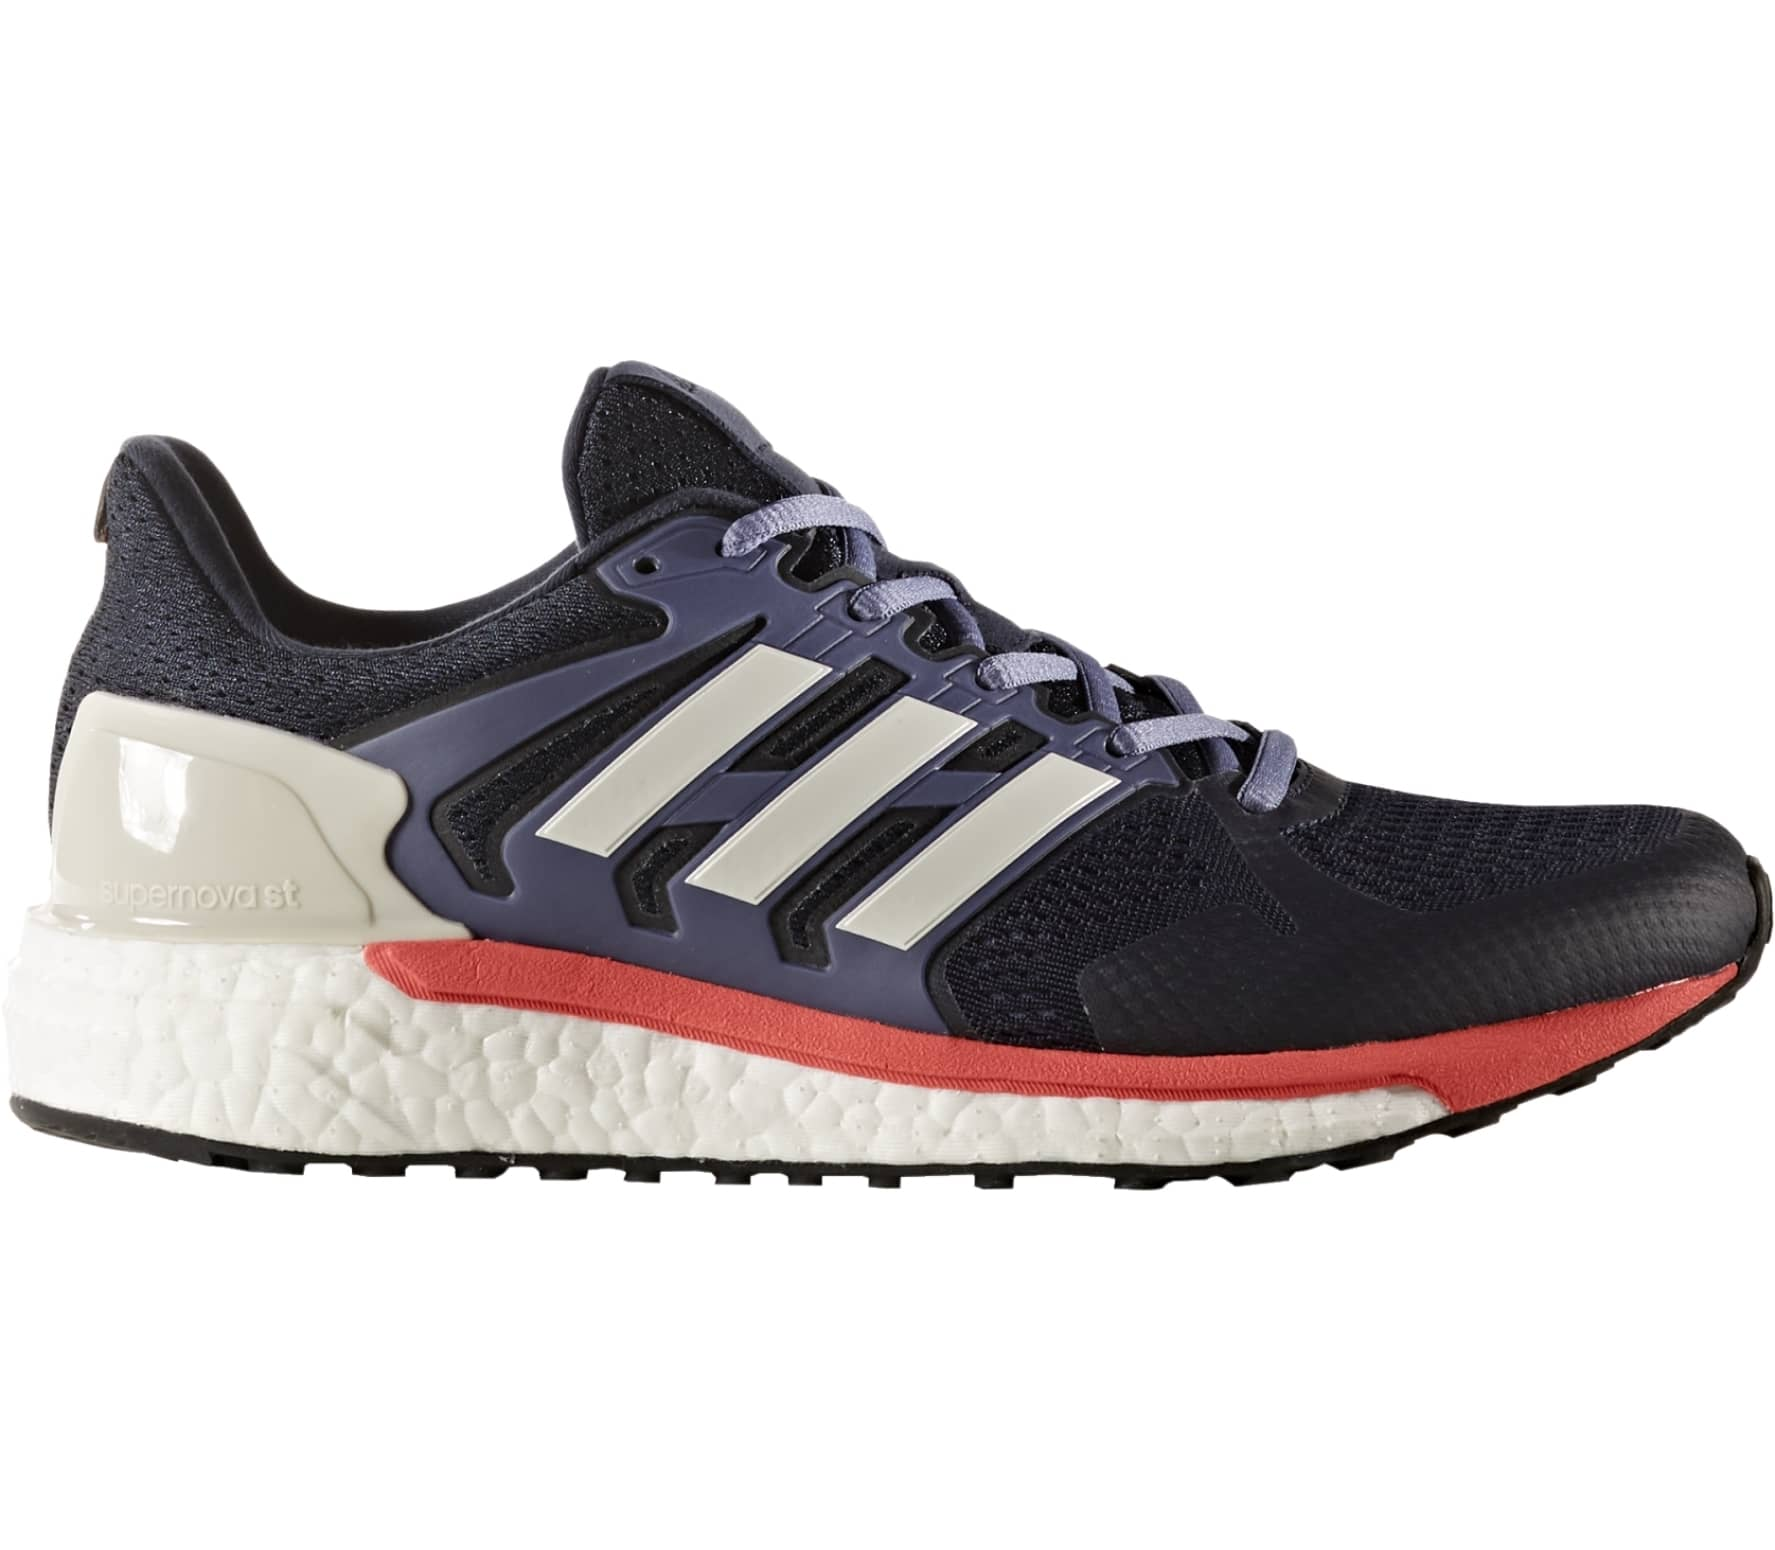 b1753055b Adidas - Supernova ST women s running shoes (dark blue white) - buy ...